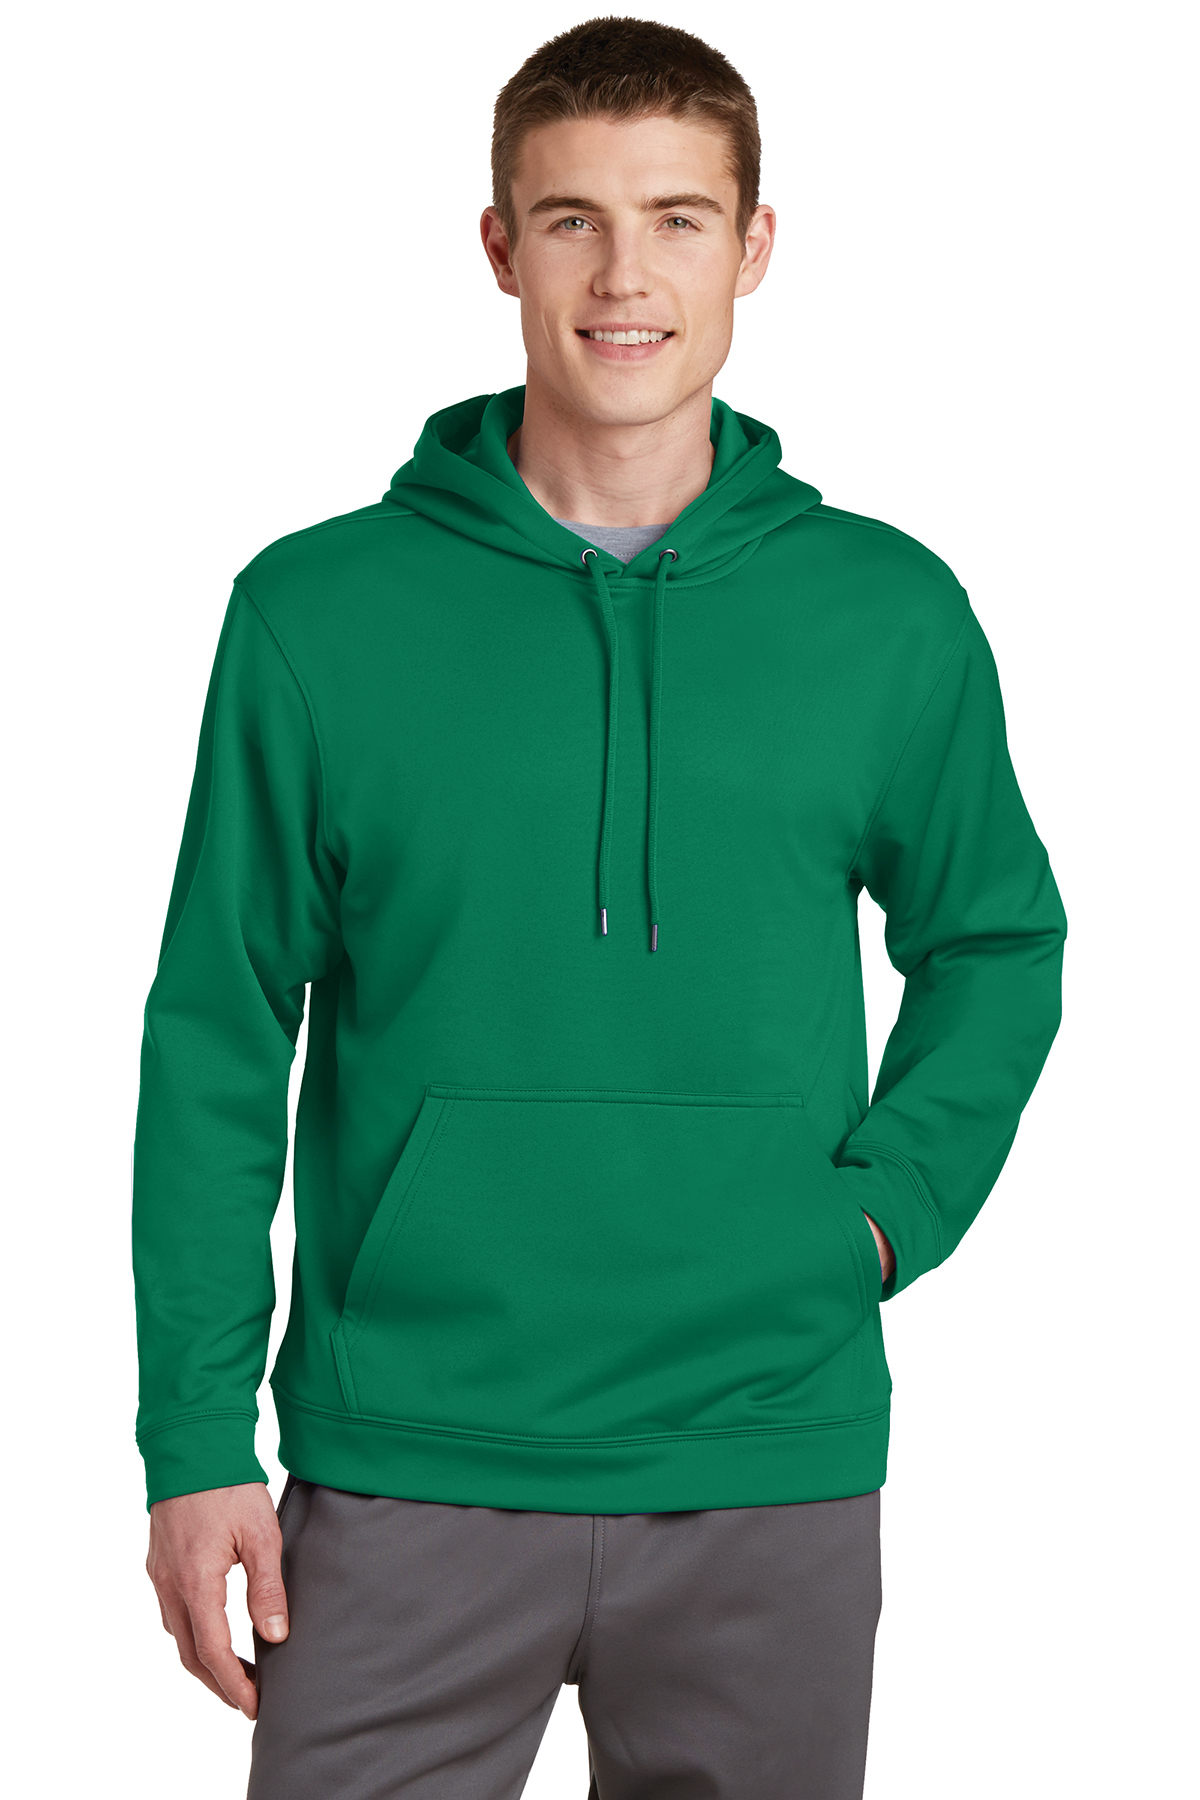 Sport Tek Sport Wick Fleece Hooded Pullover Gsh Apparel Looks ggod and less casual than a fleece with a fuzzy finish. gsh apparel